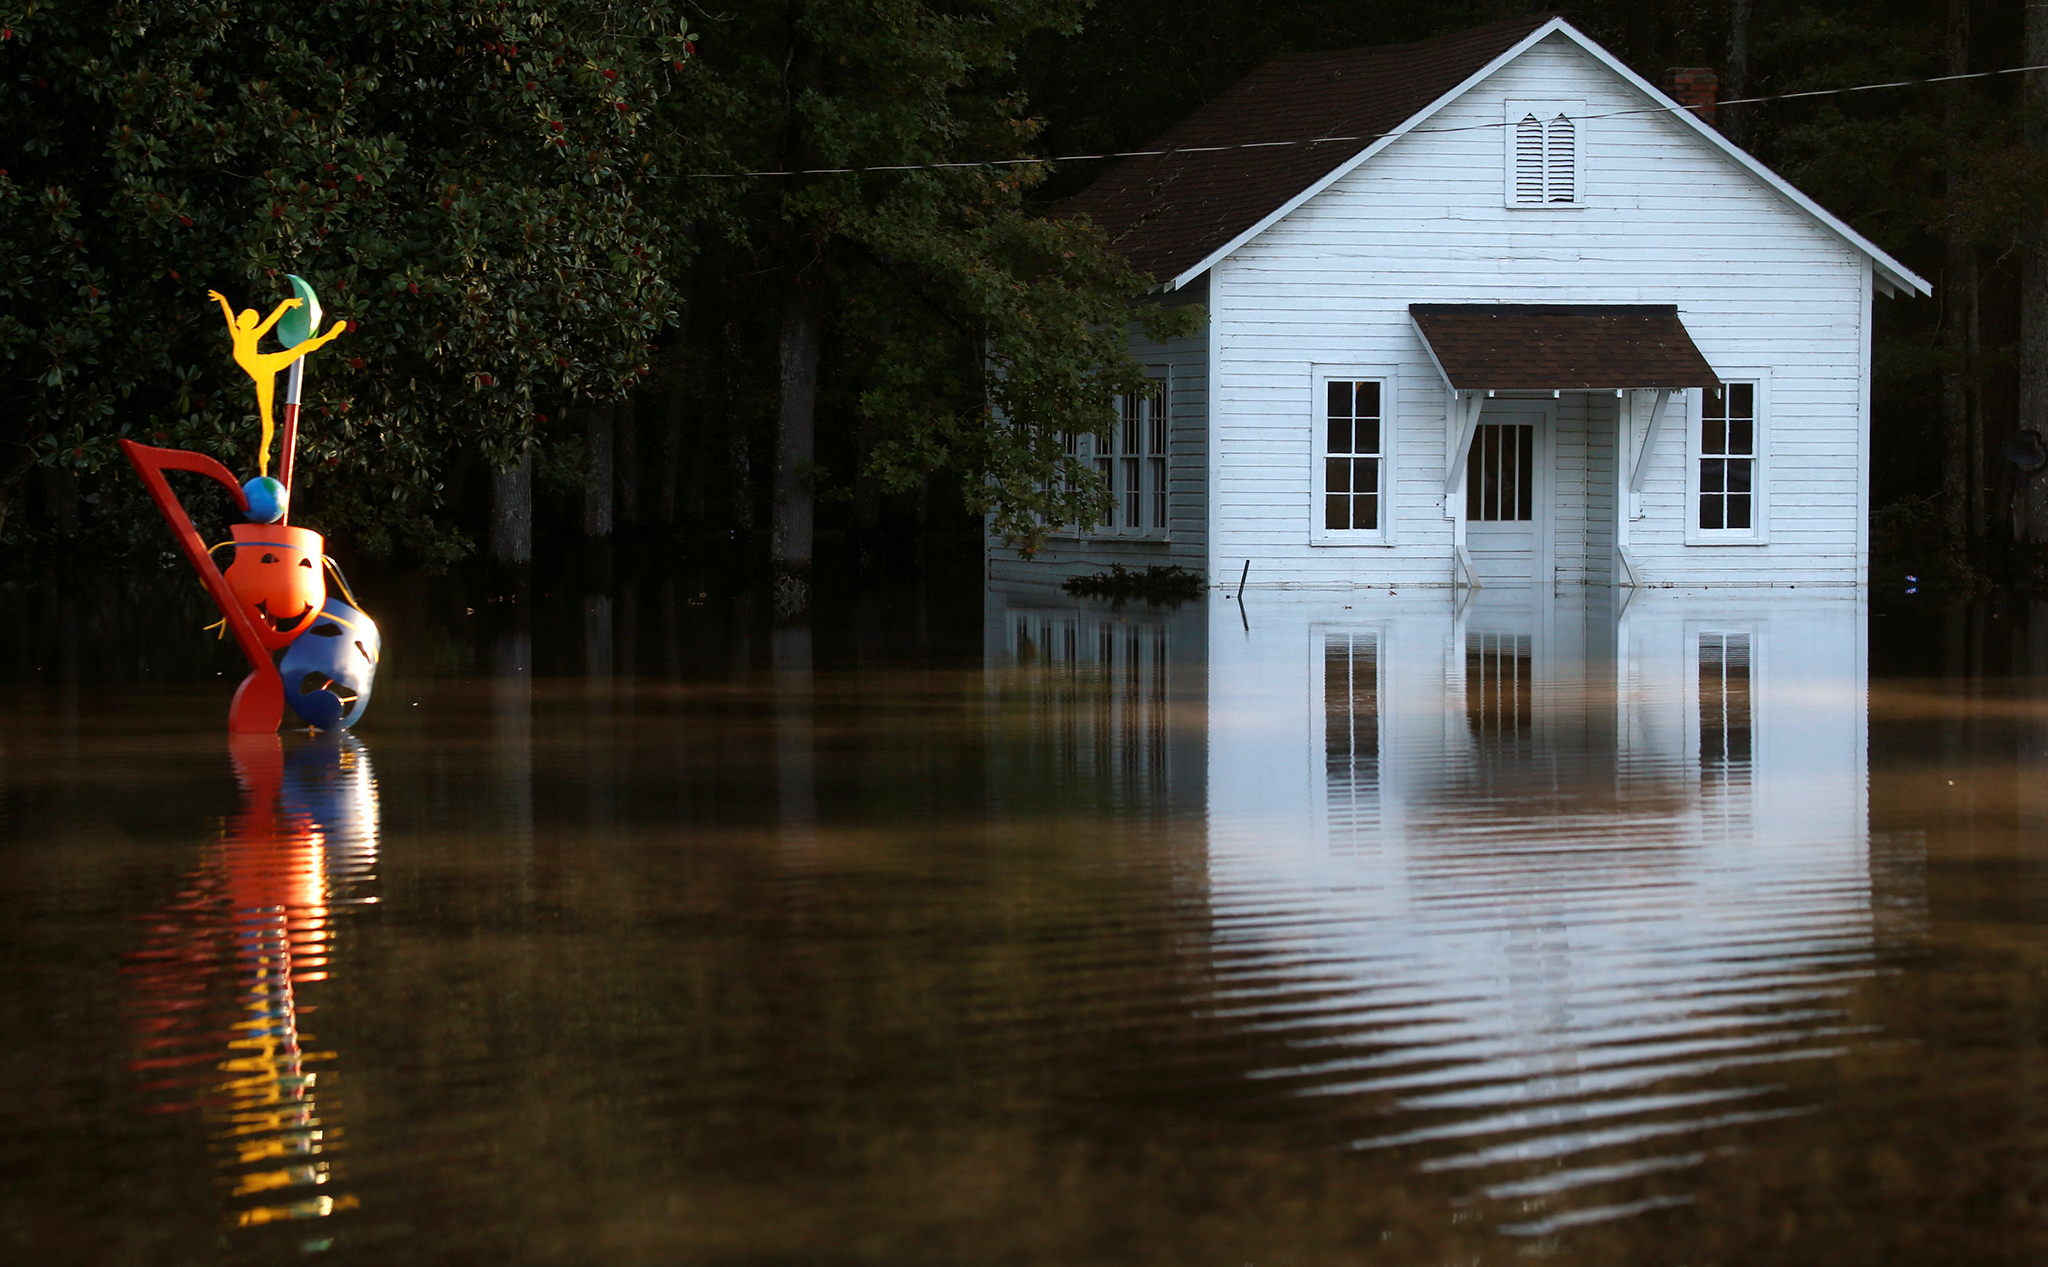 A flooded building is pictured after Hurricane Matthew passes in Lumberton, North Carolina, U.S., October 11, 2016.